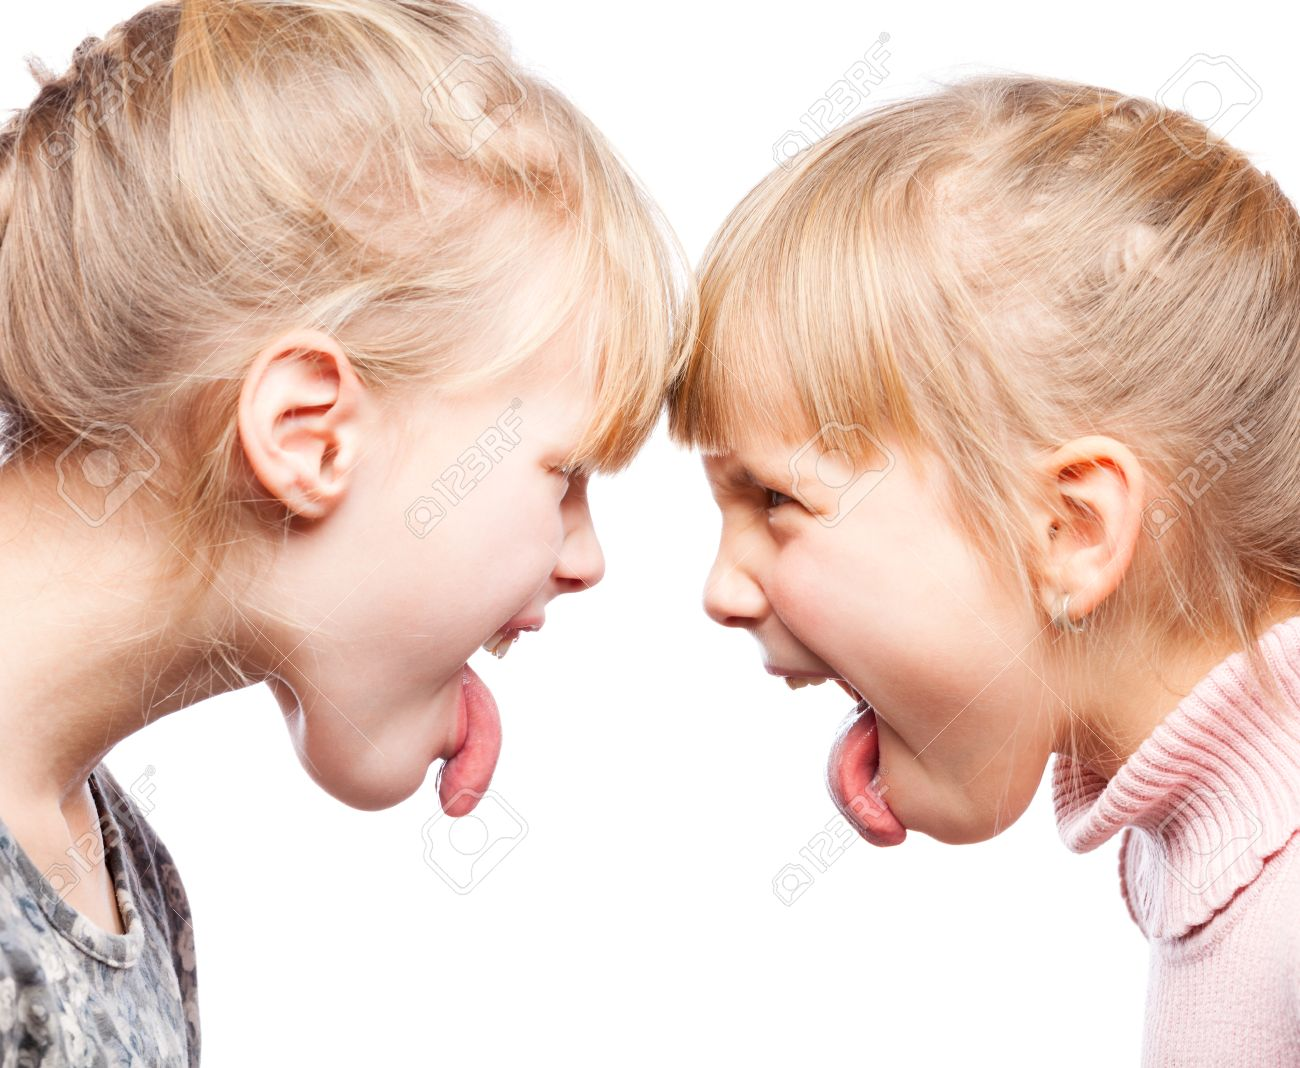 Two little girls unfriendly stick out tongues teasing each other - 49811230